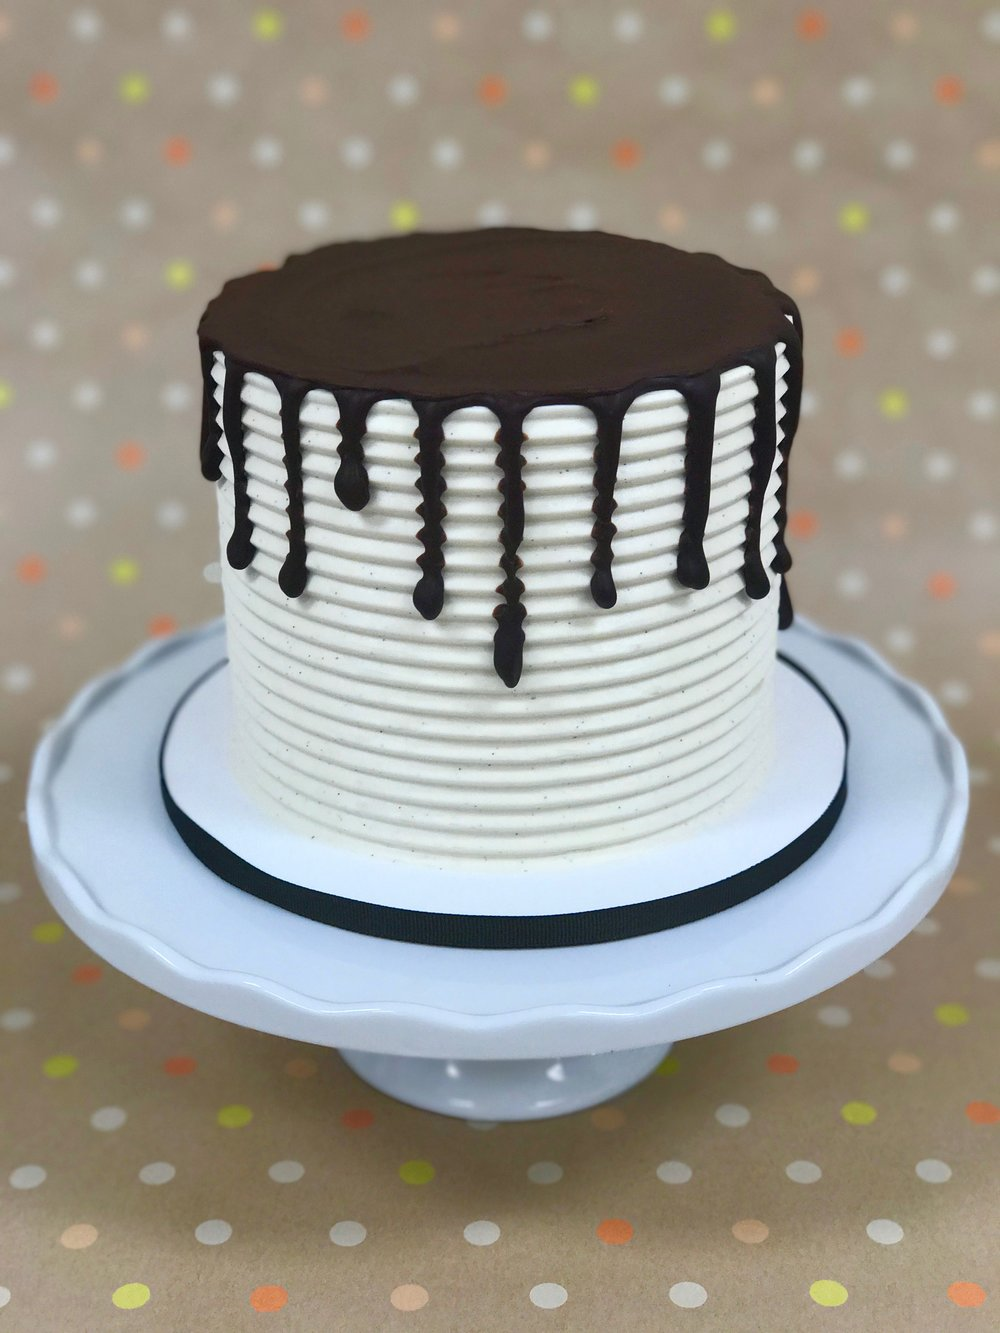 Black And White - Cake: Vanilla Bean and ChocolateFilling: Vanilla Bean and Chocolate ButtercreamsFrosting: Vanilla Bean Swiss Meringue Buttercream and Dark Chocolate Ganache